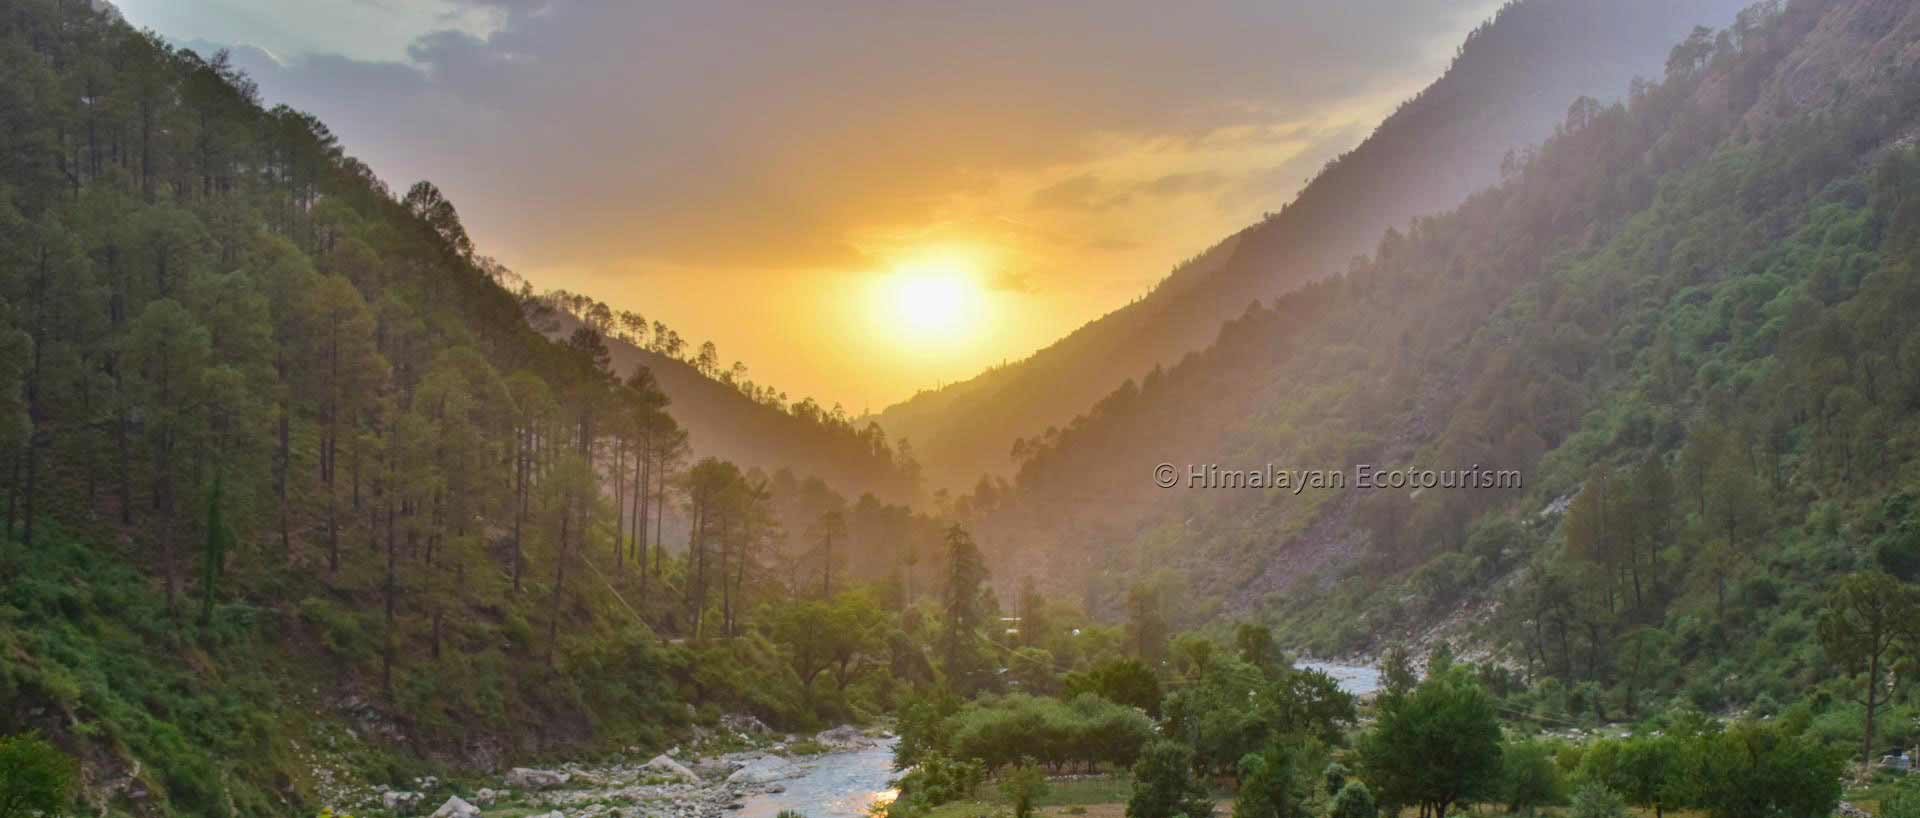 Tirthan valley photo